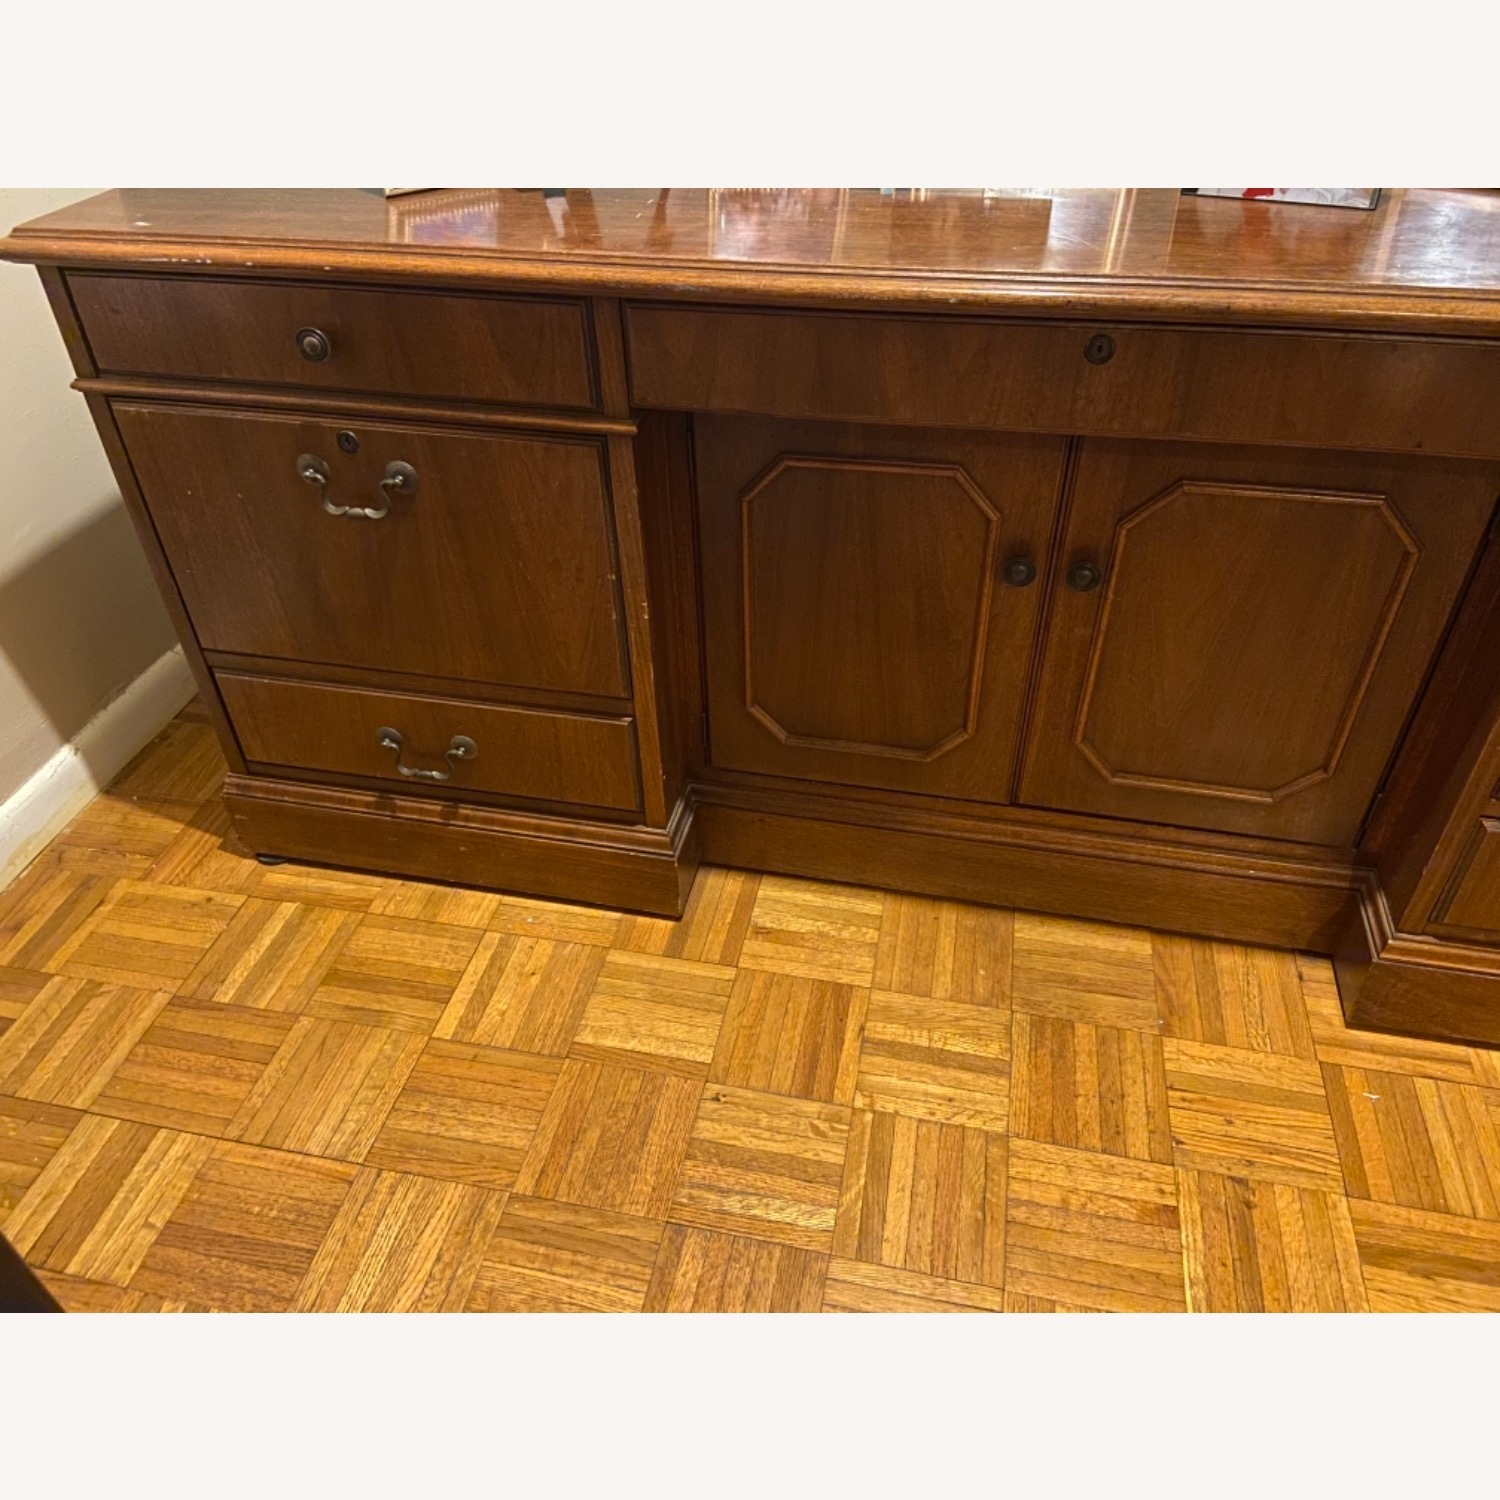 Credenza Solid Wood - image-9